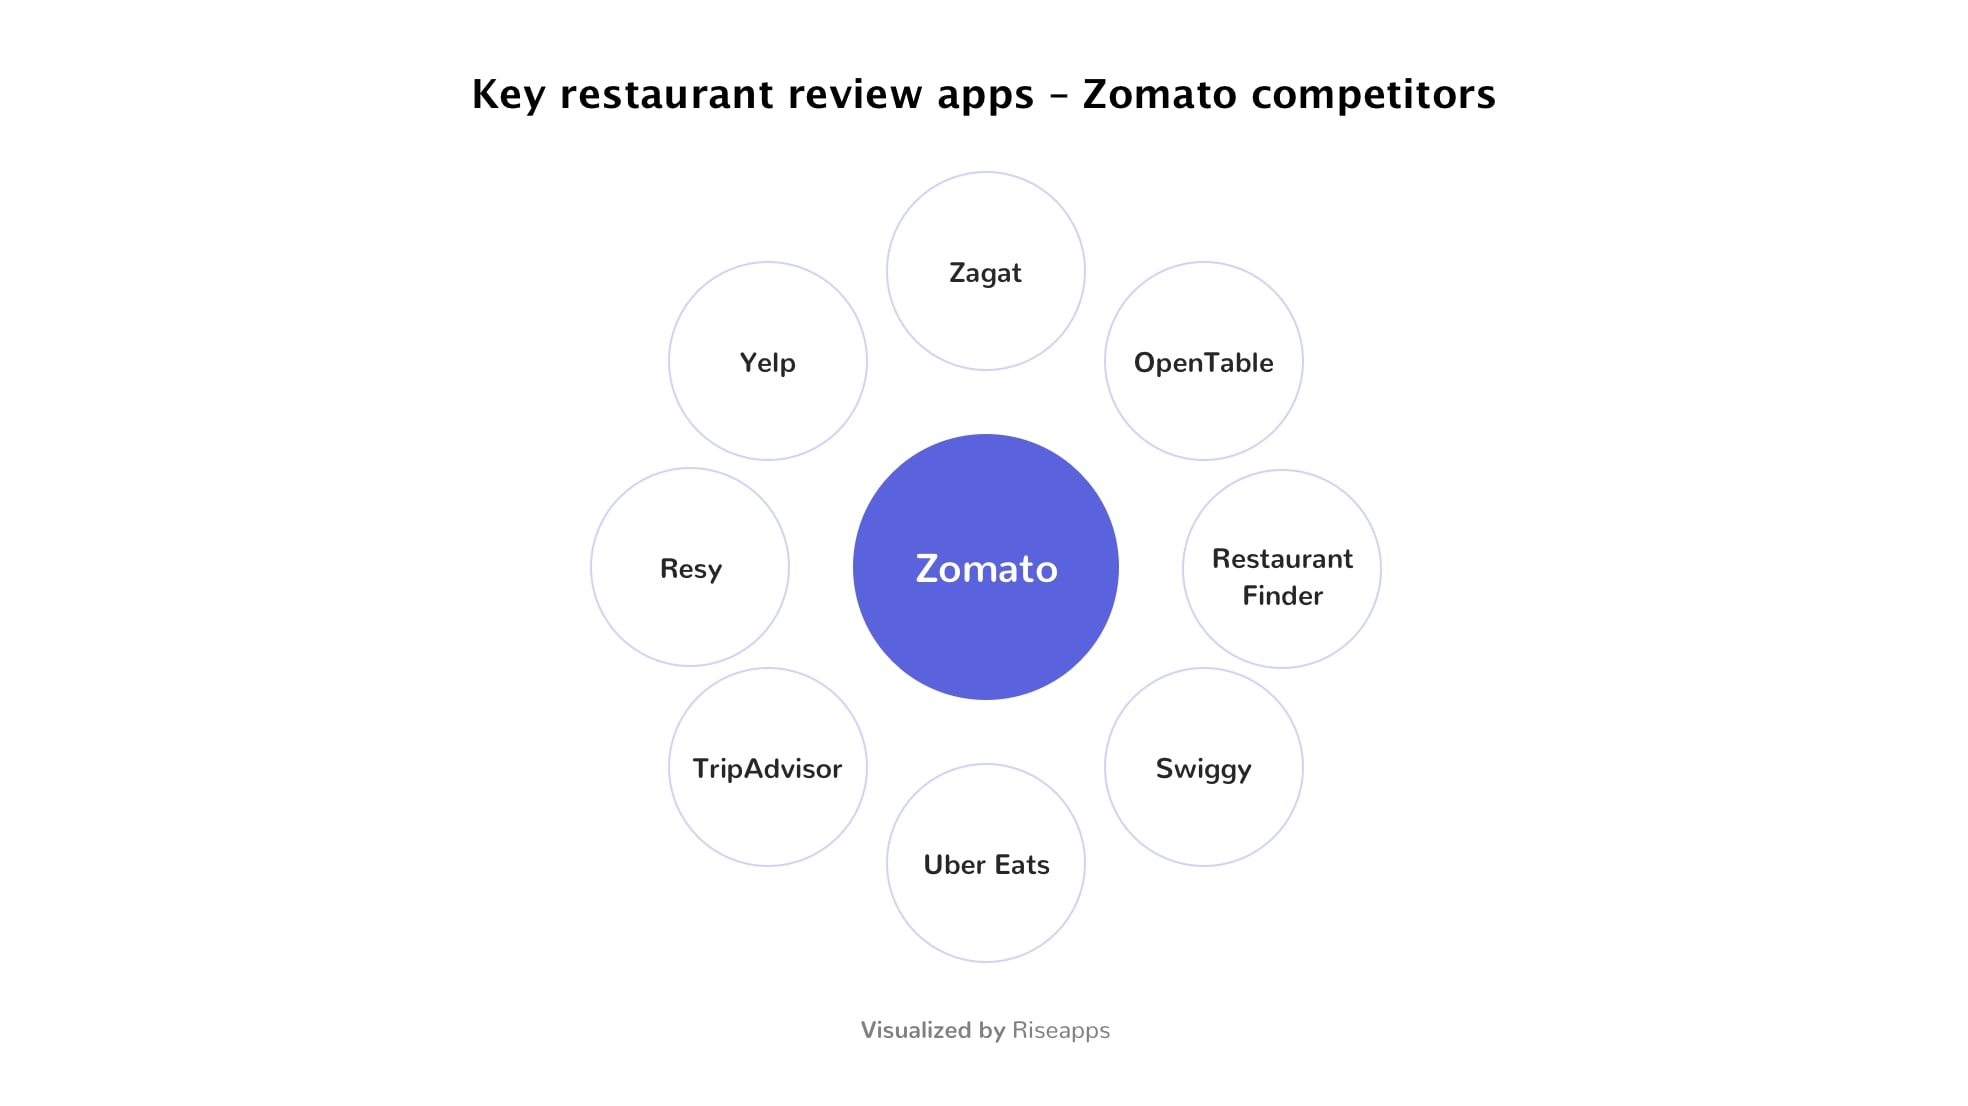 Key restaurant reviews app: Zomato competitors